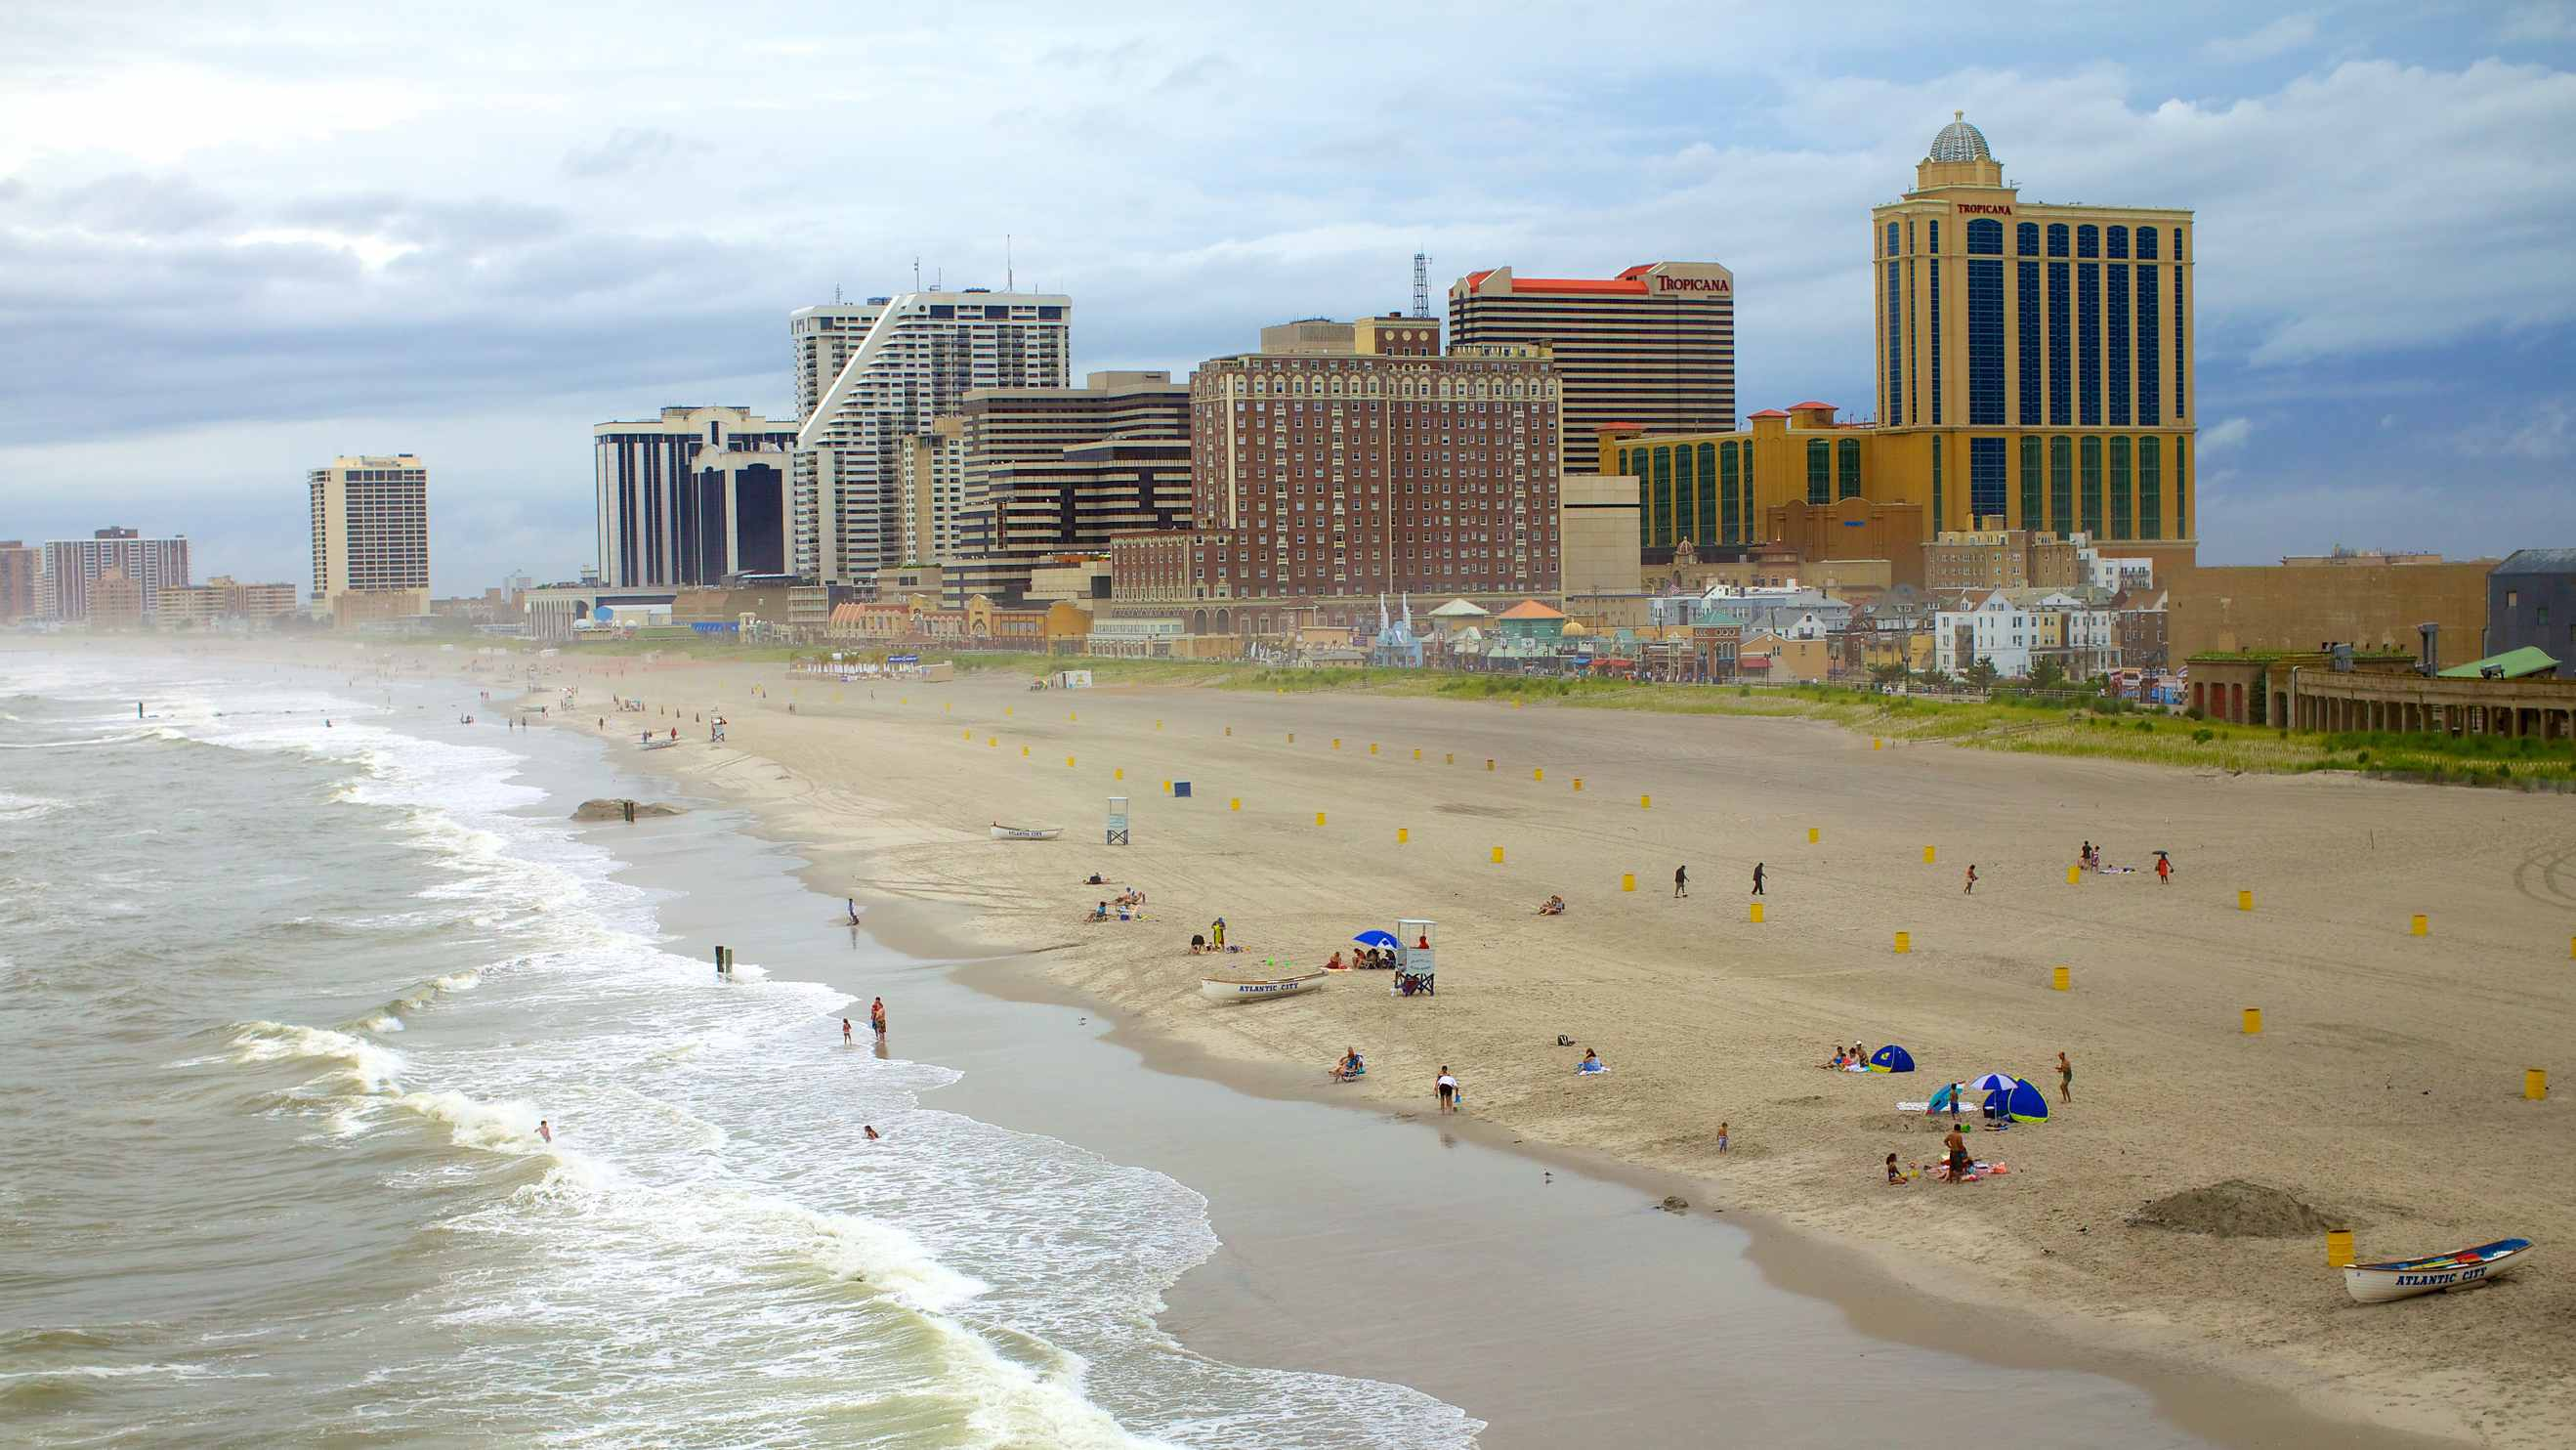 Atlantic city casino flight package diablo 2 unable to join tcp ip game